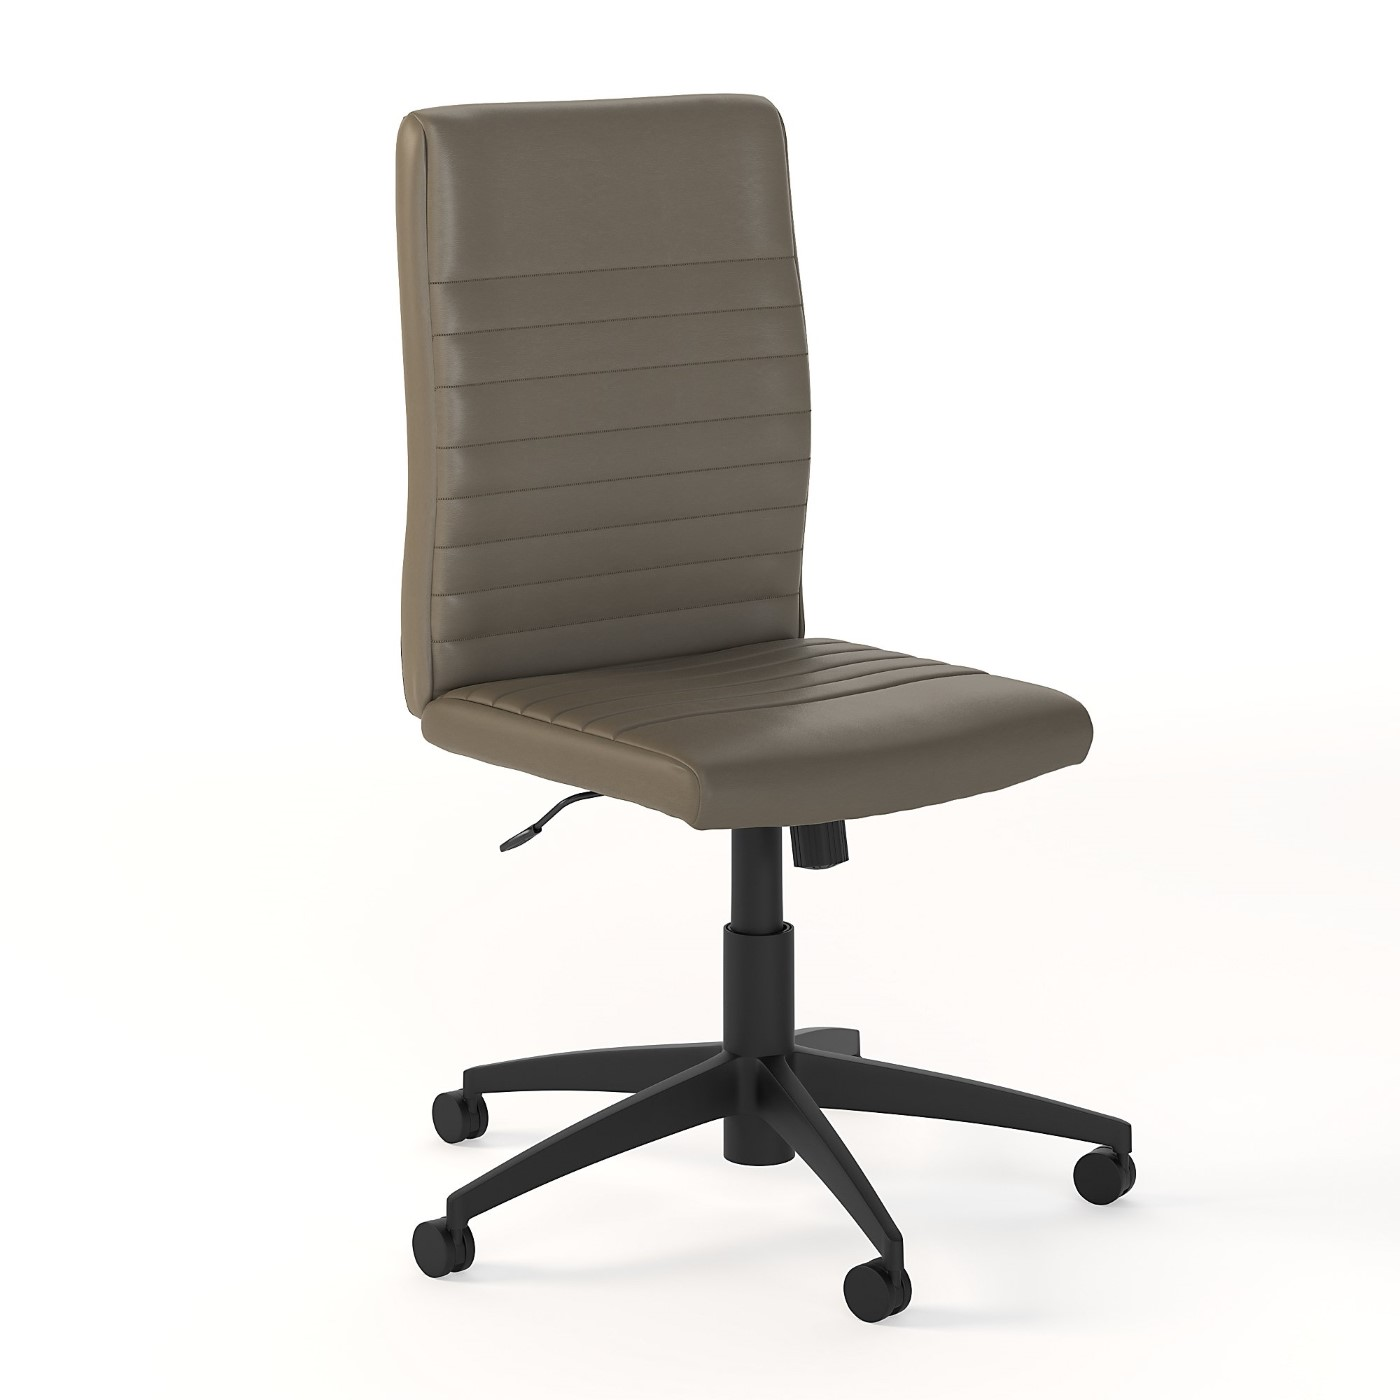 <font color=#c60><b>BUSH BUSINESS FURNITURE ARCHIVE MID BACK RIBBED LEATHER OFFICE CHAIR. FREE SHIPPING 30H x 72L x 72W</font></b>